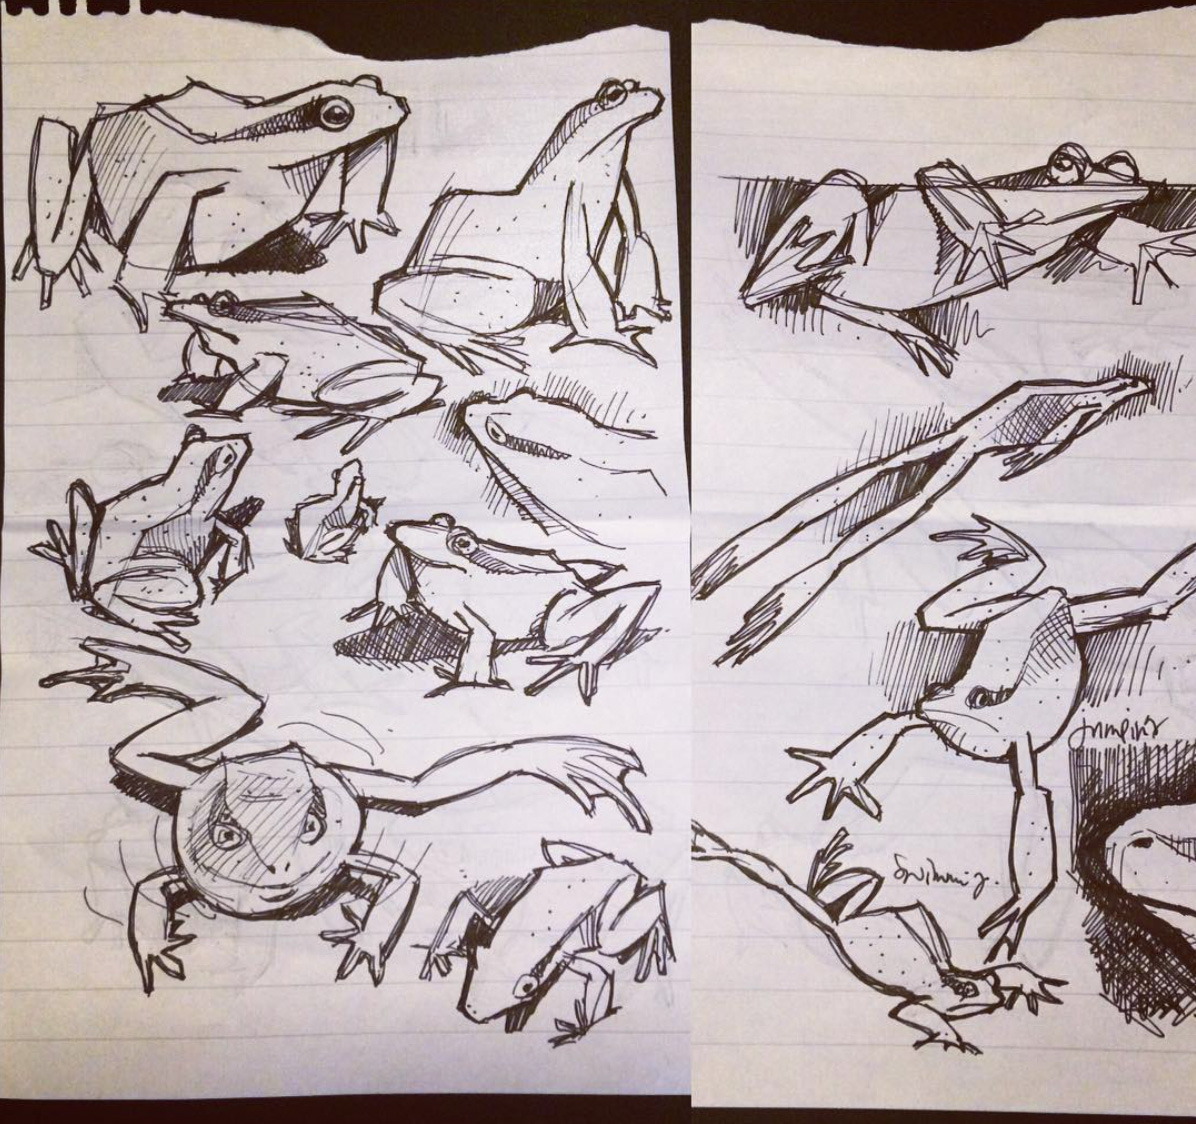 Froggy sketches